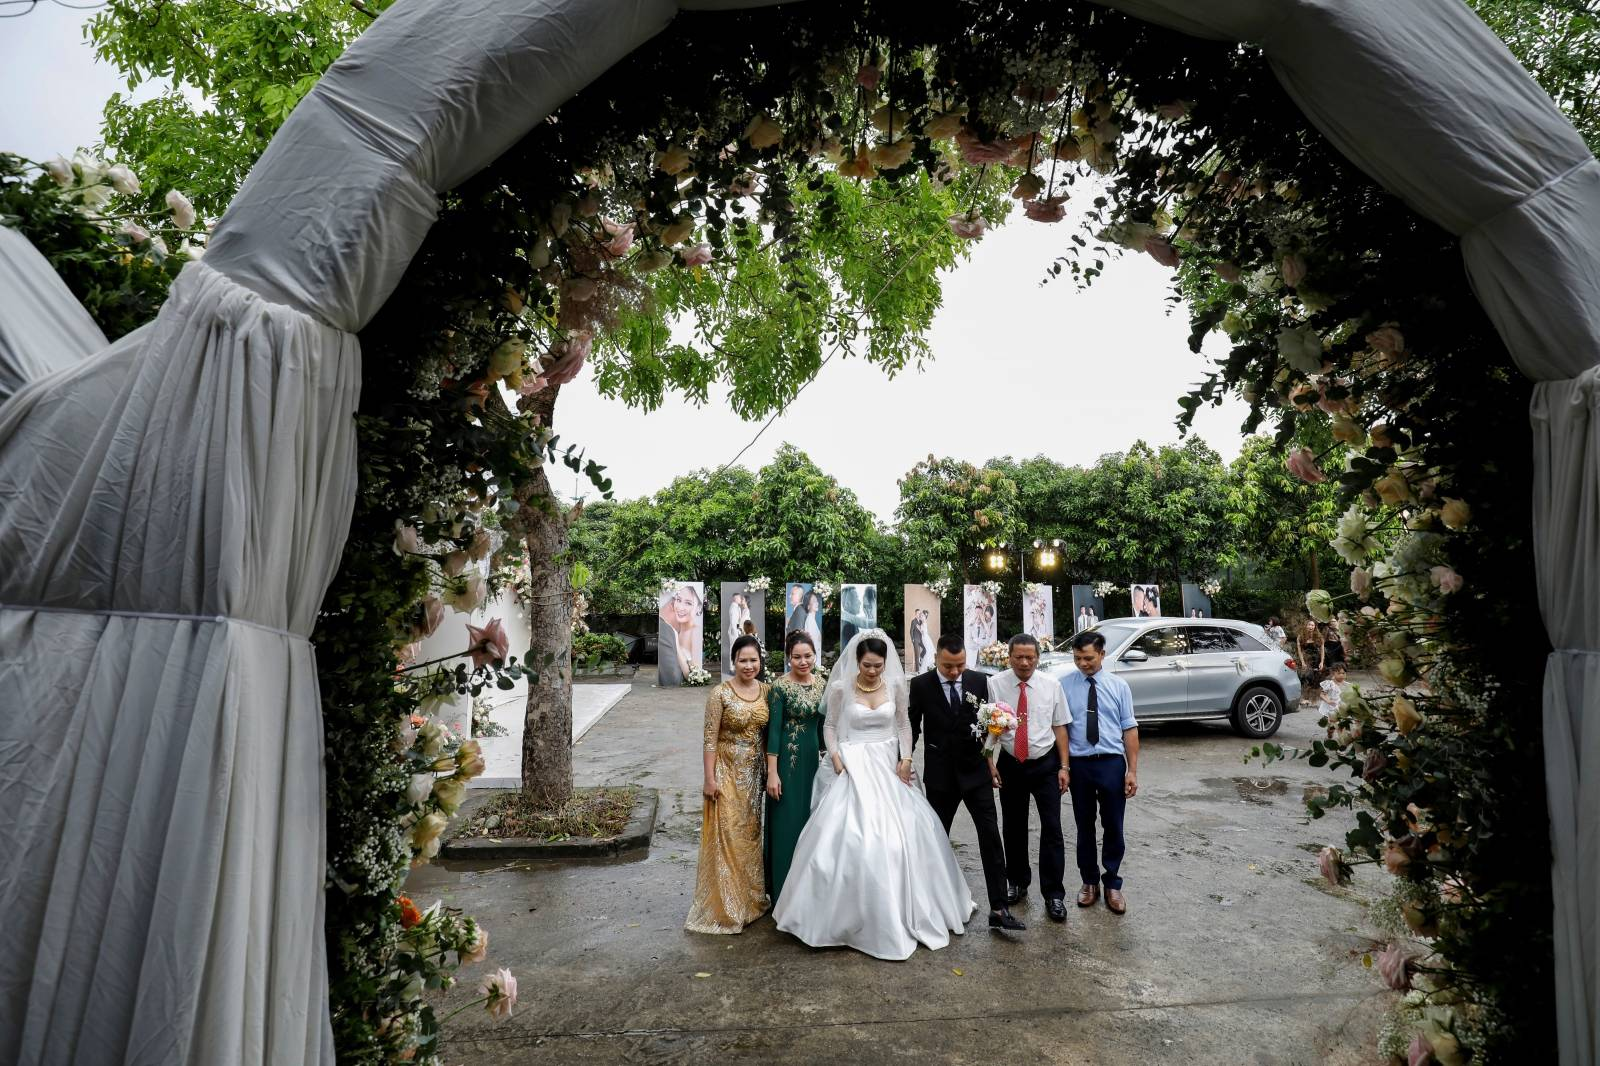 Wedding after the Vietnamese government eased the nationwide lockdown for the coronavirus disease (COVID-19) outbreak in Hanoi, Vietnam